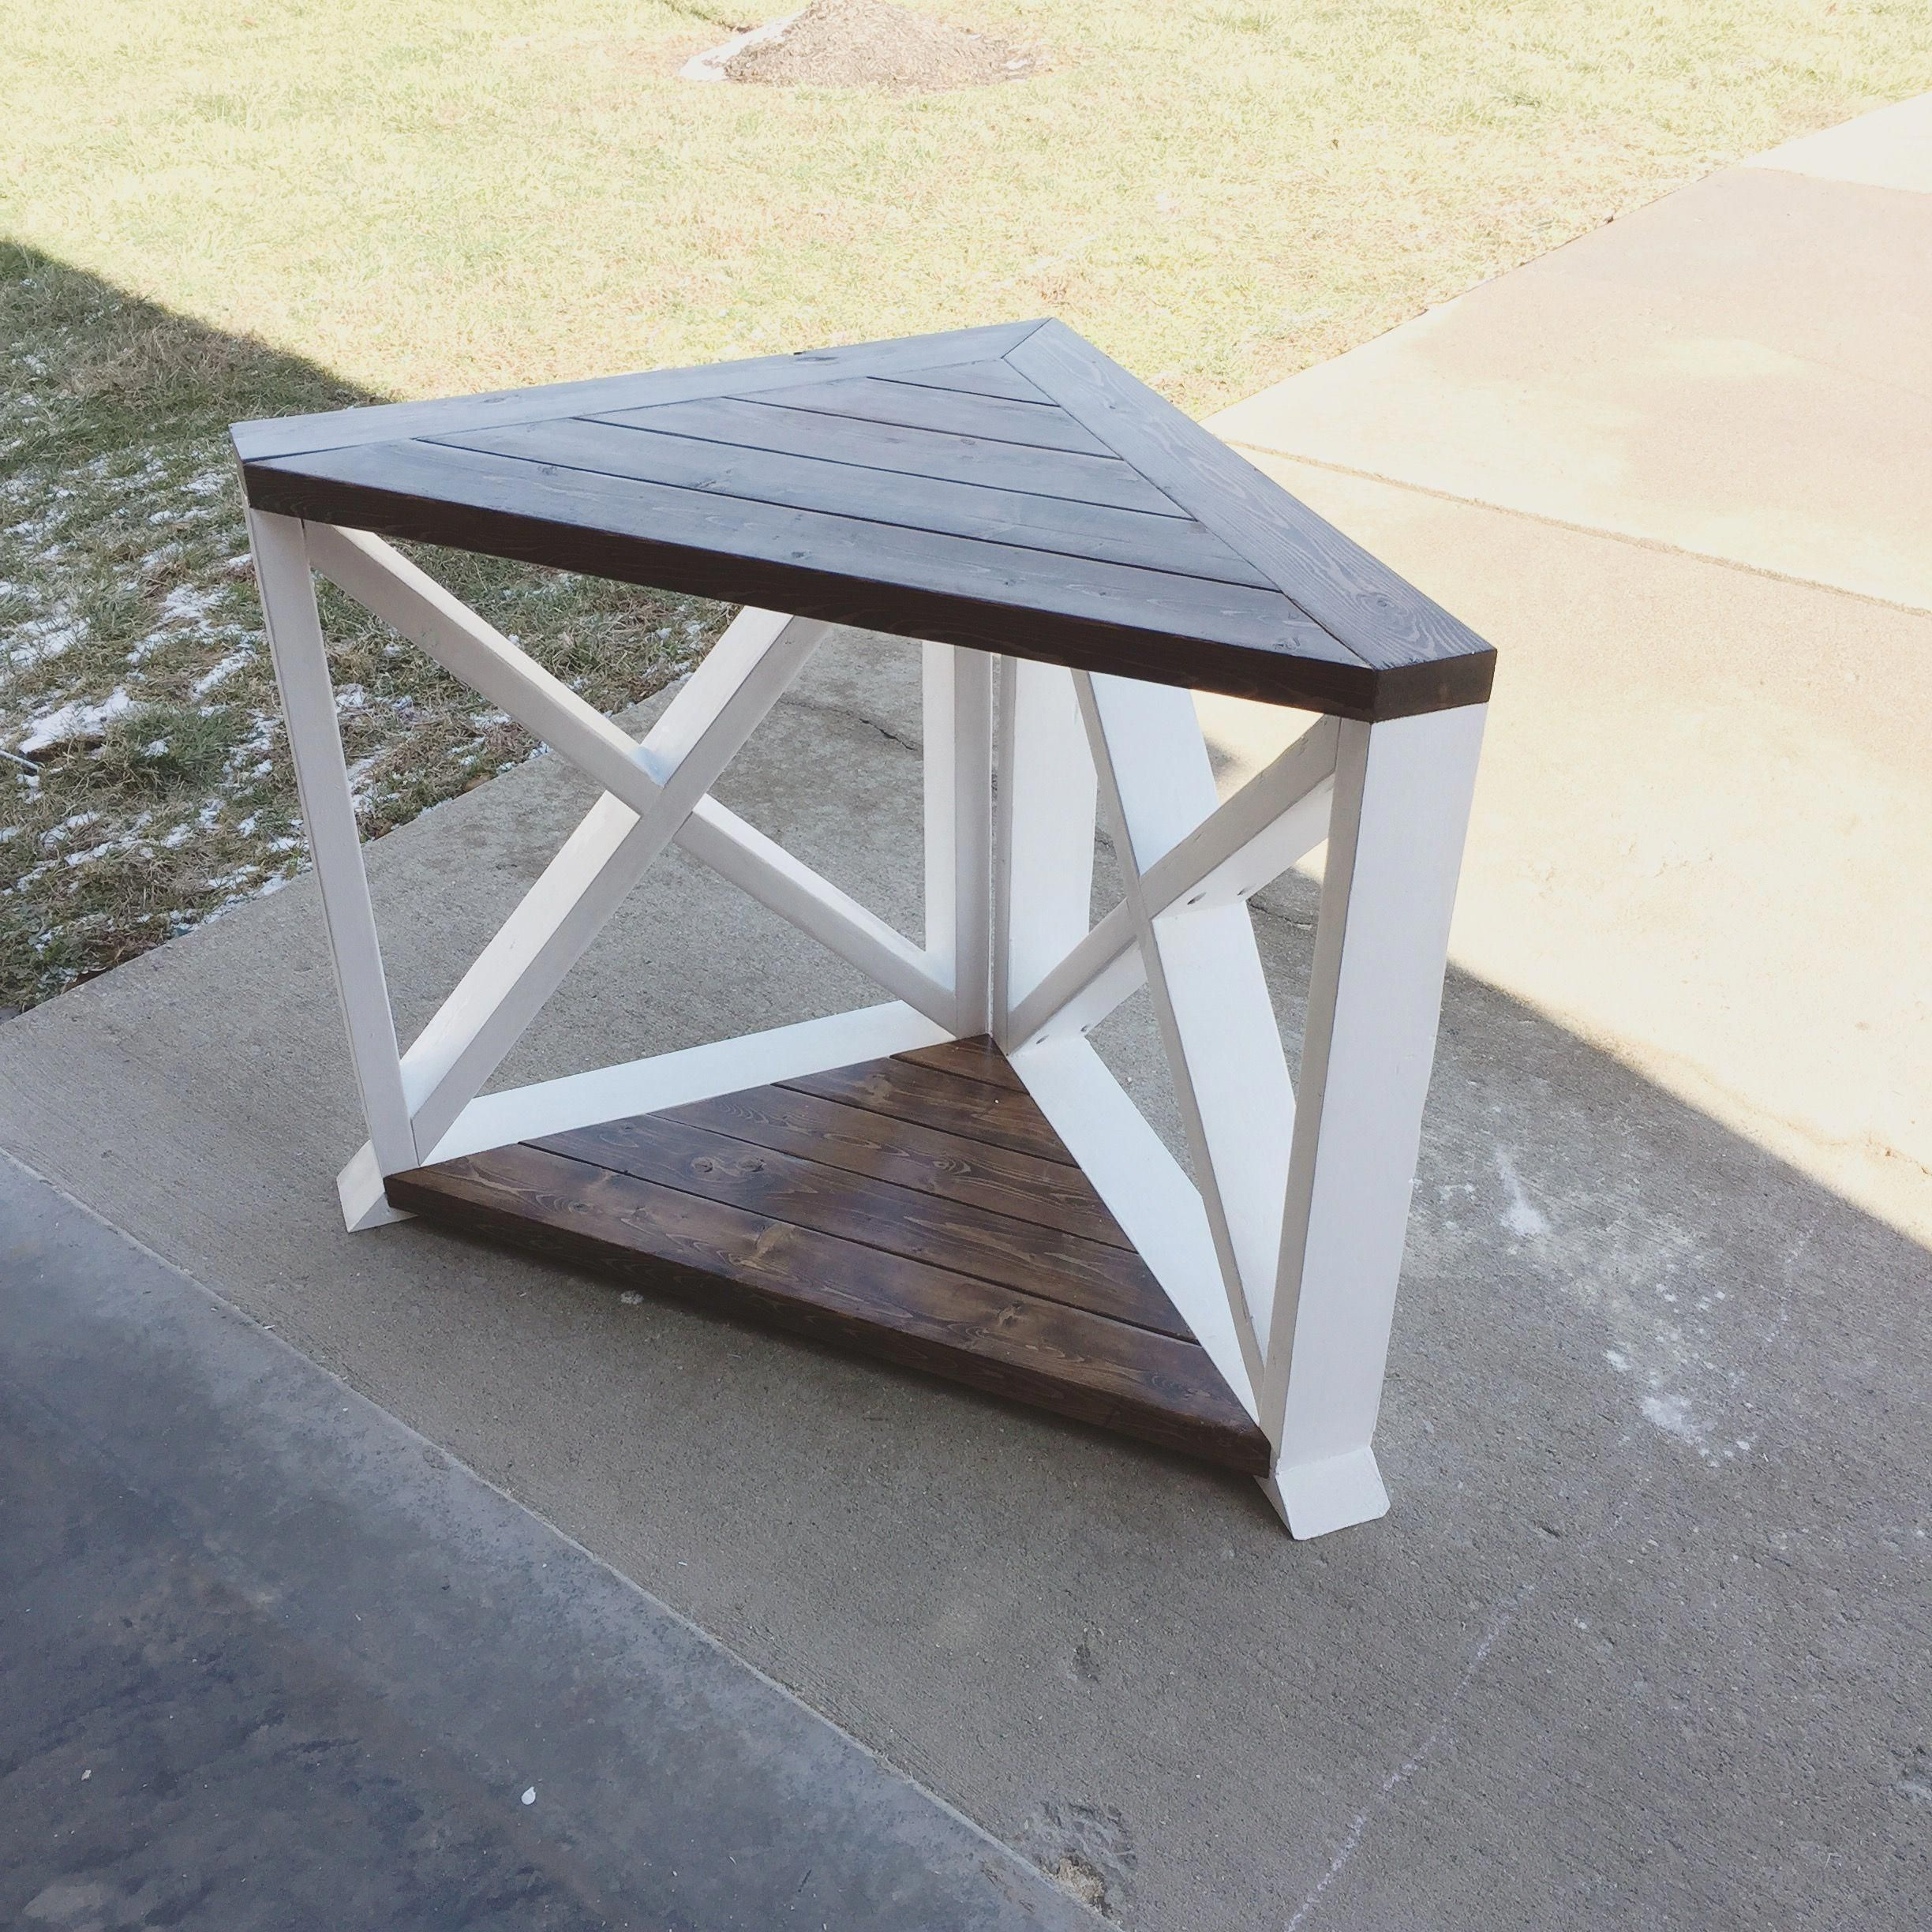 Diy farmhouse corner table made of nothing but 2x4s